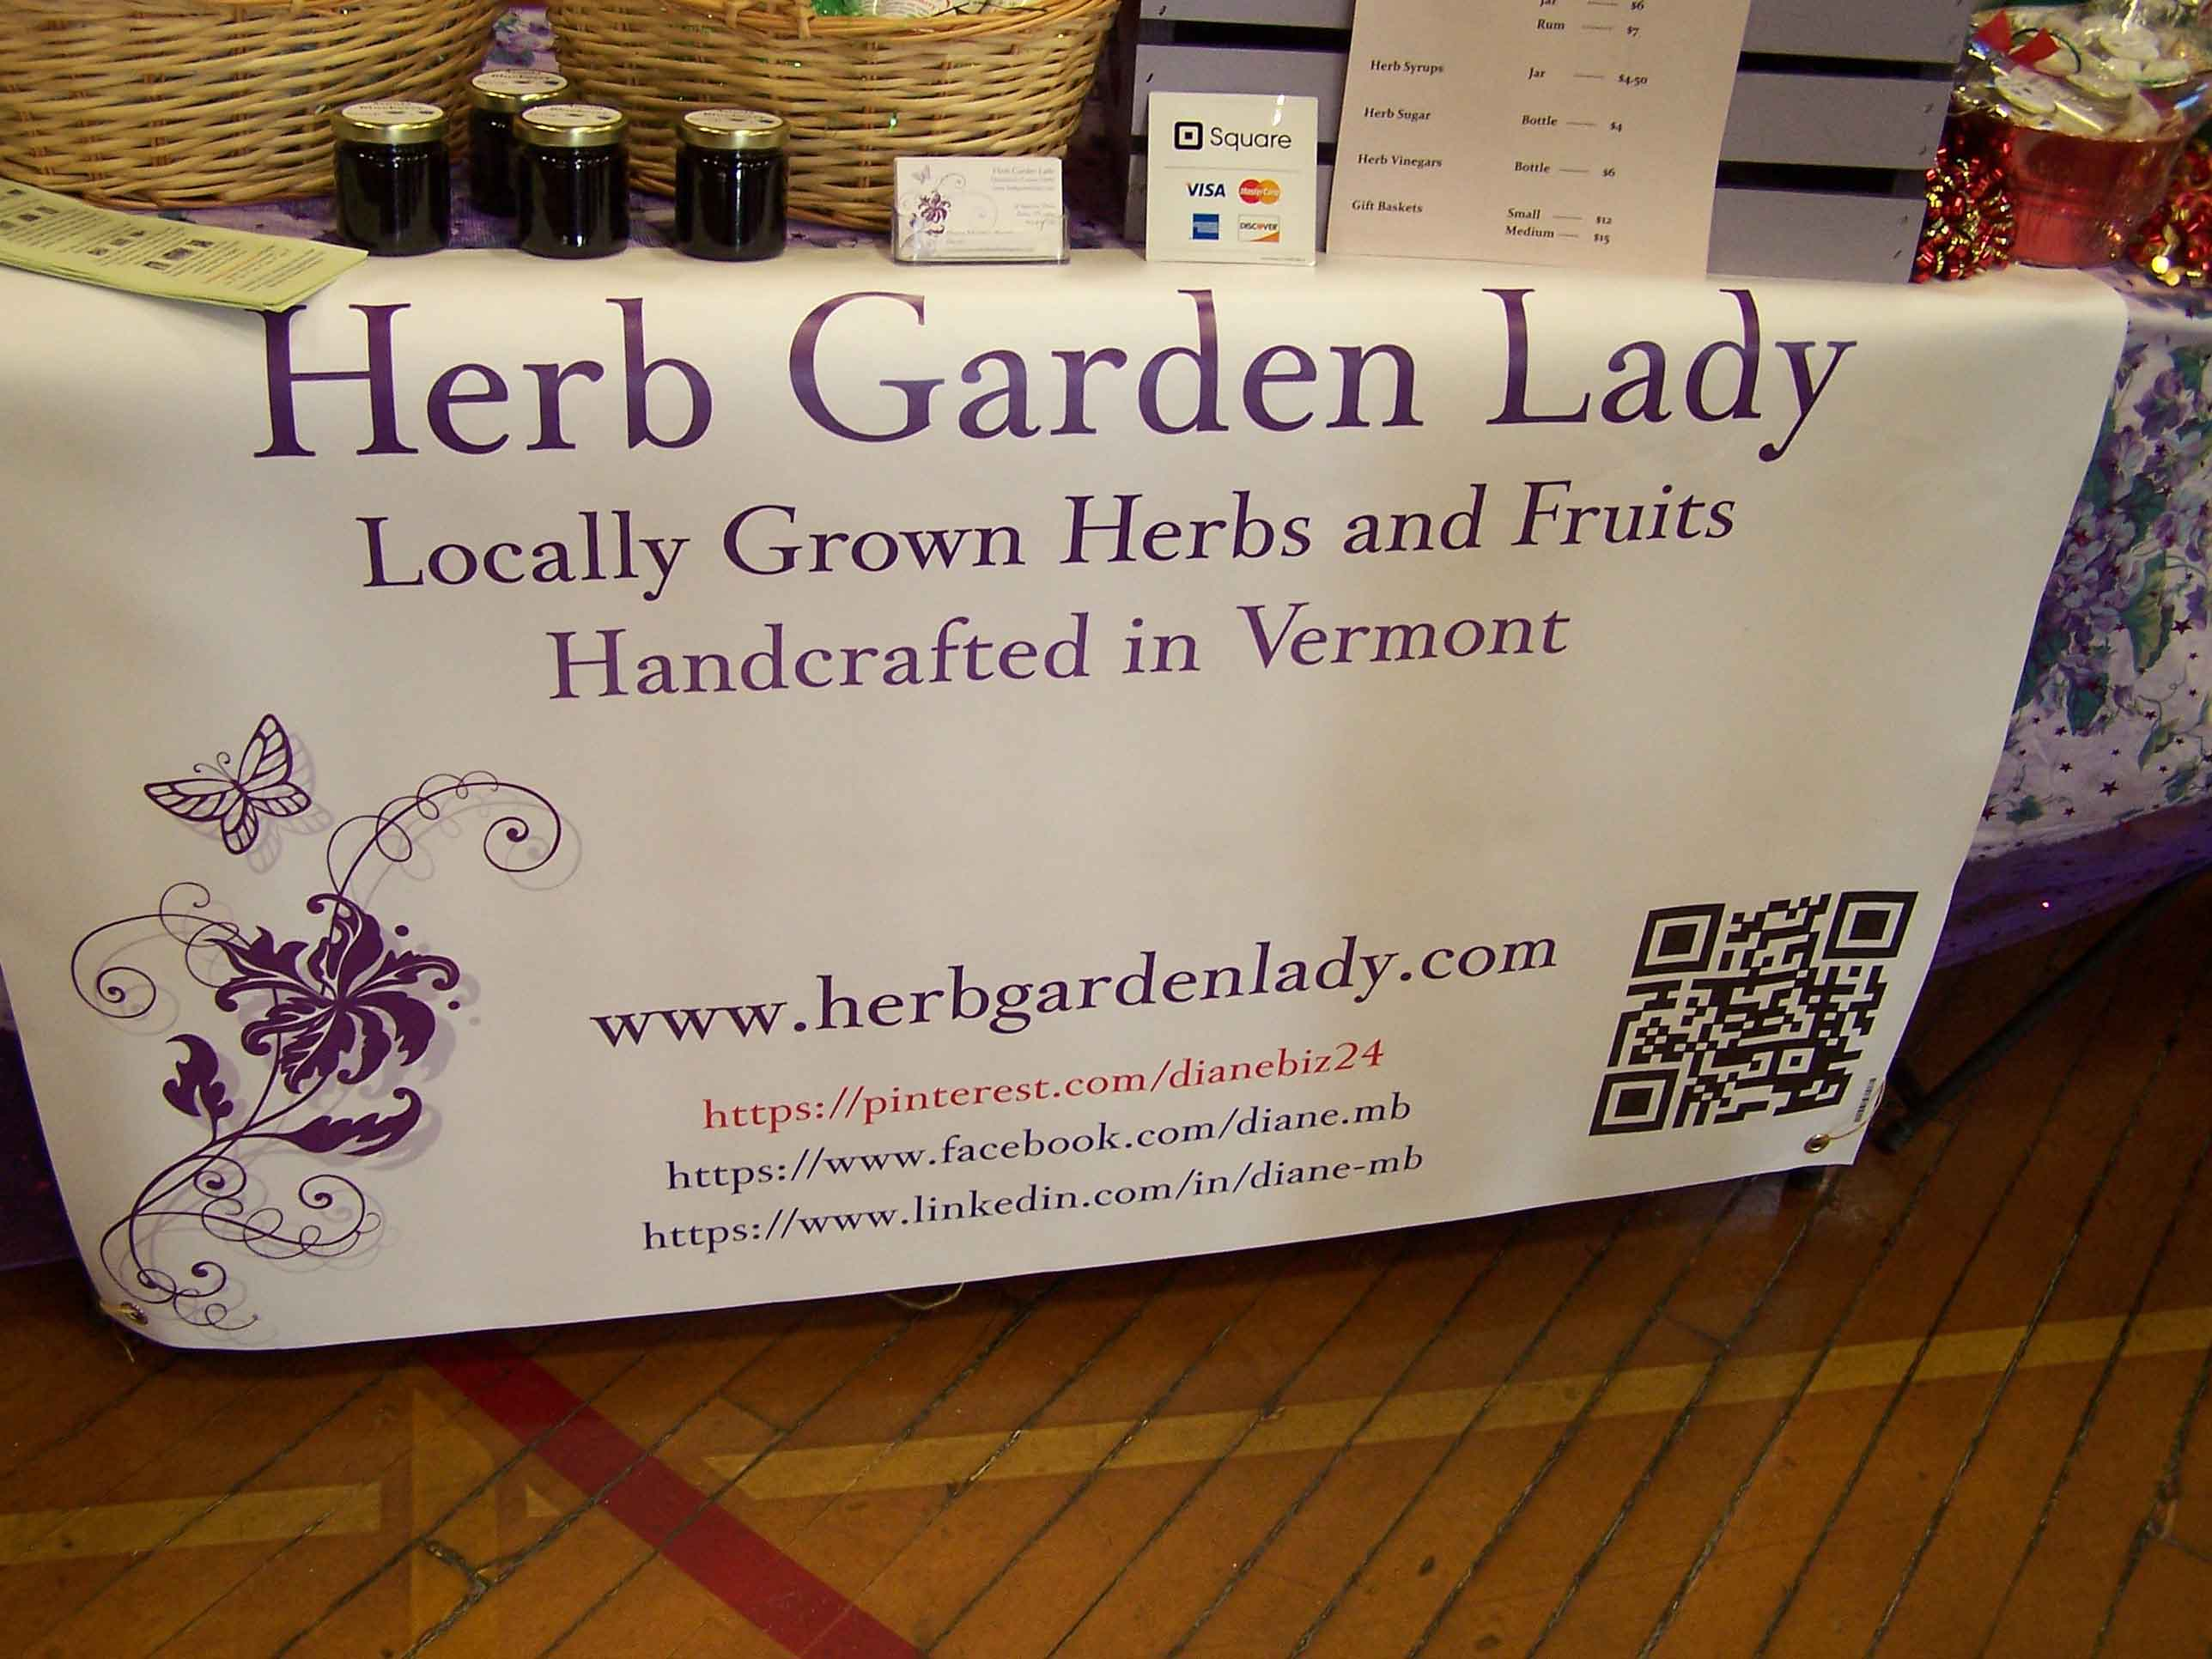 Got a new banner for my table at the Farmers Market!